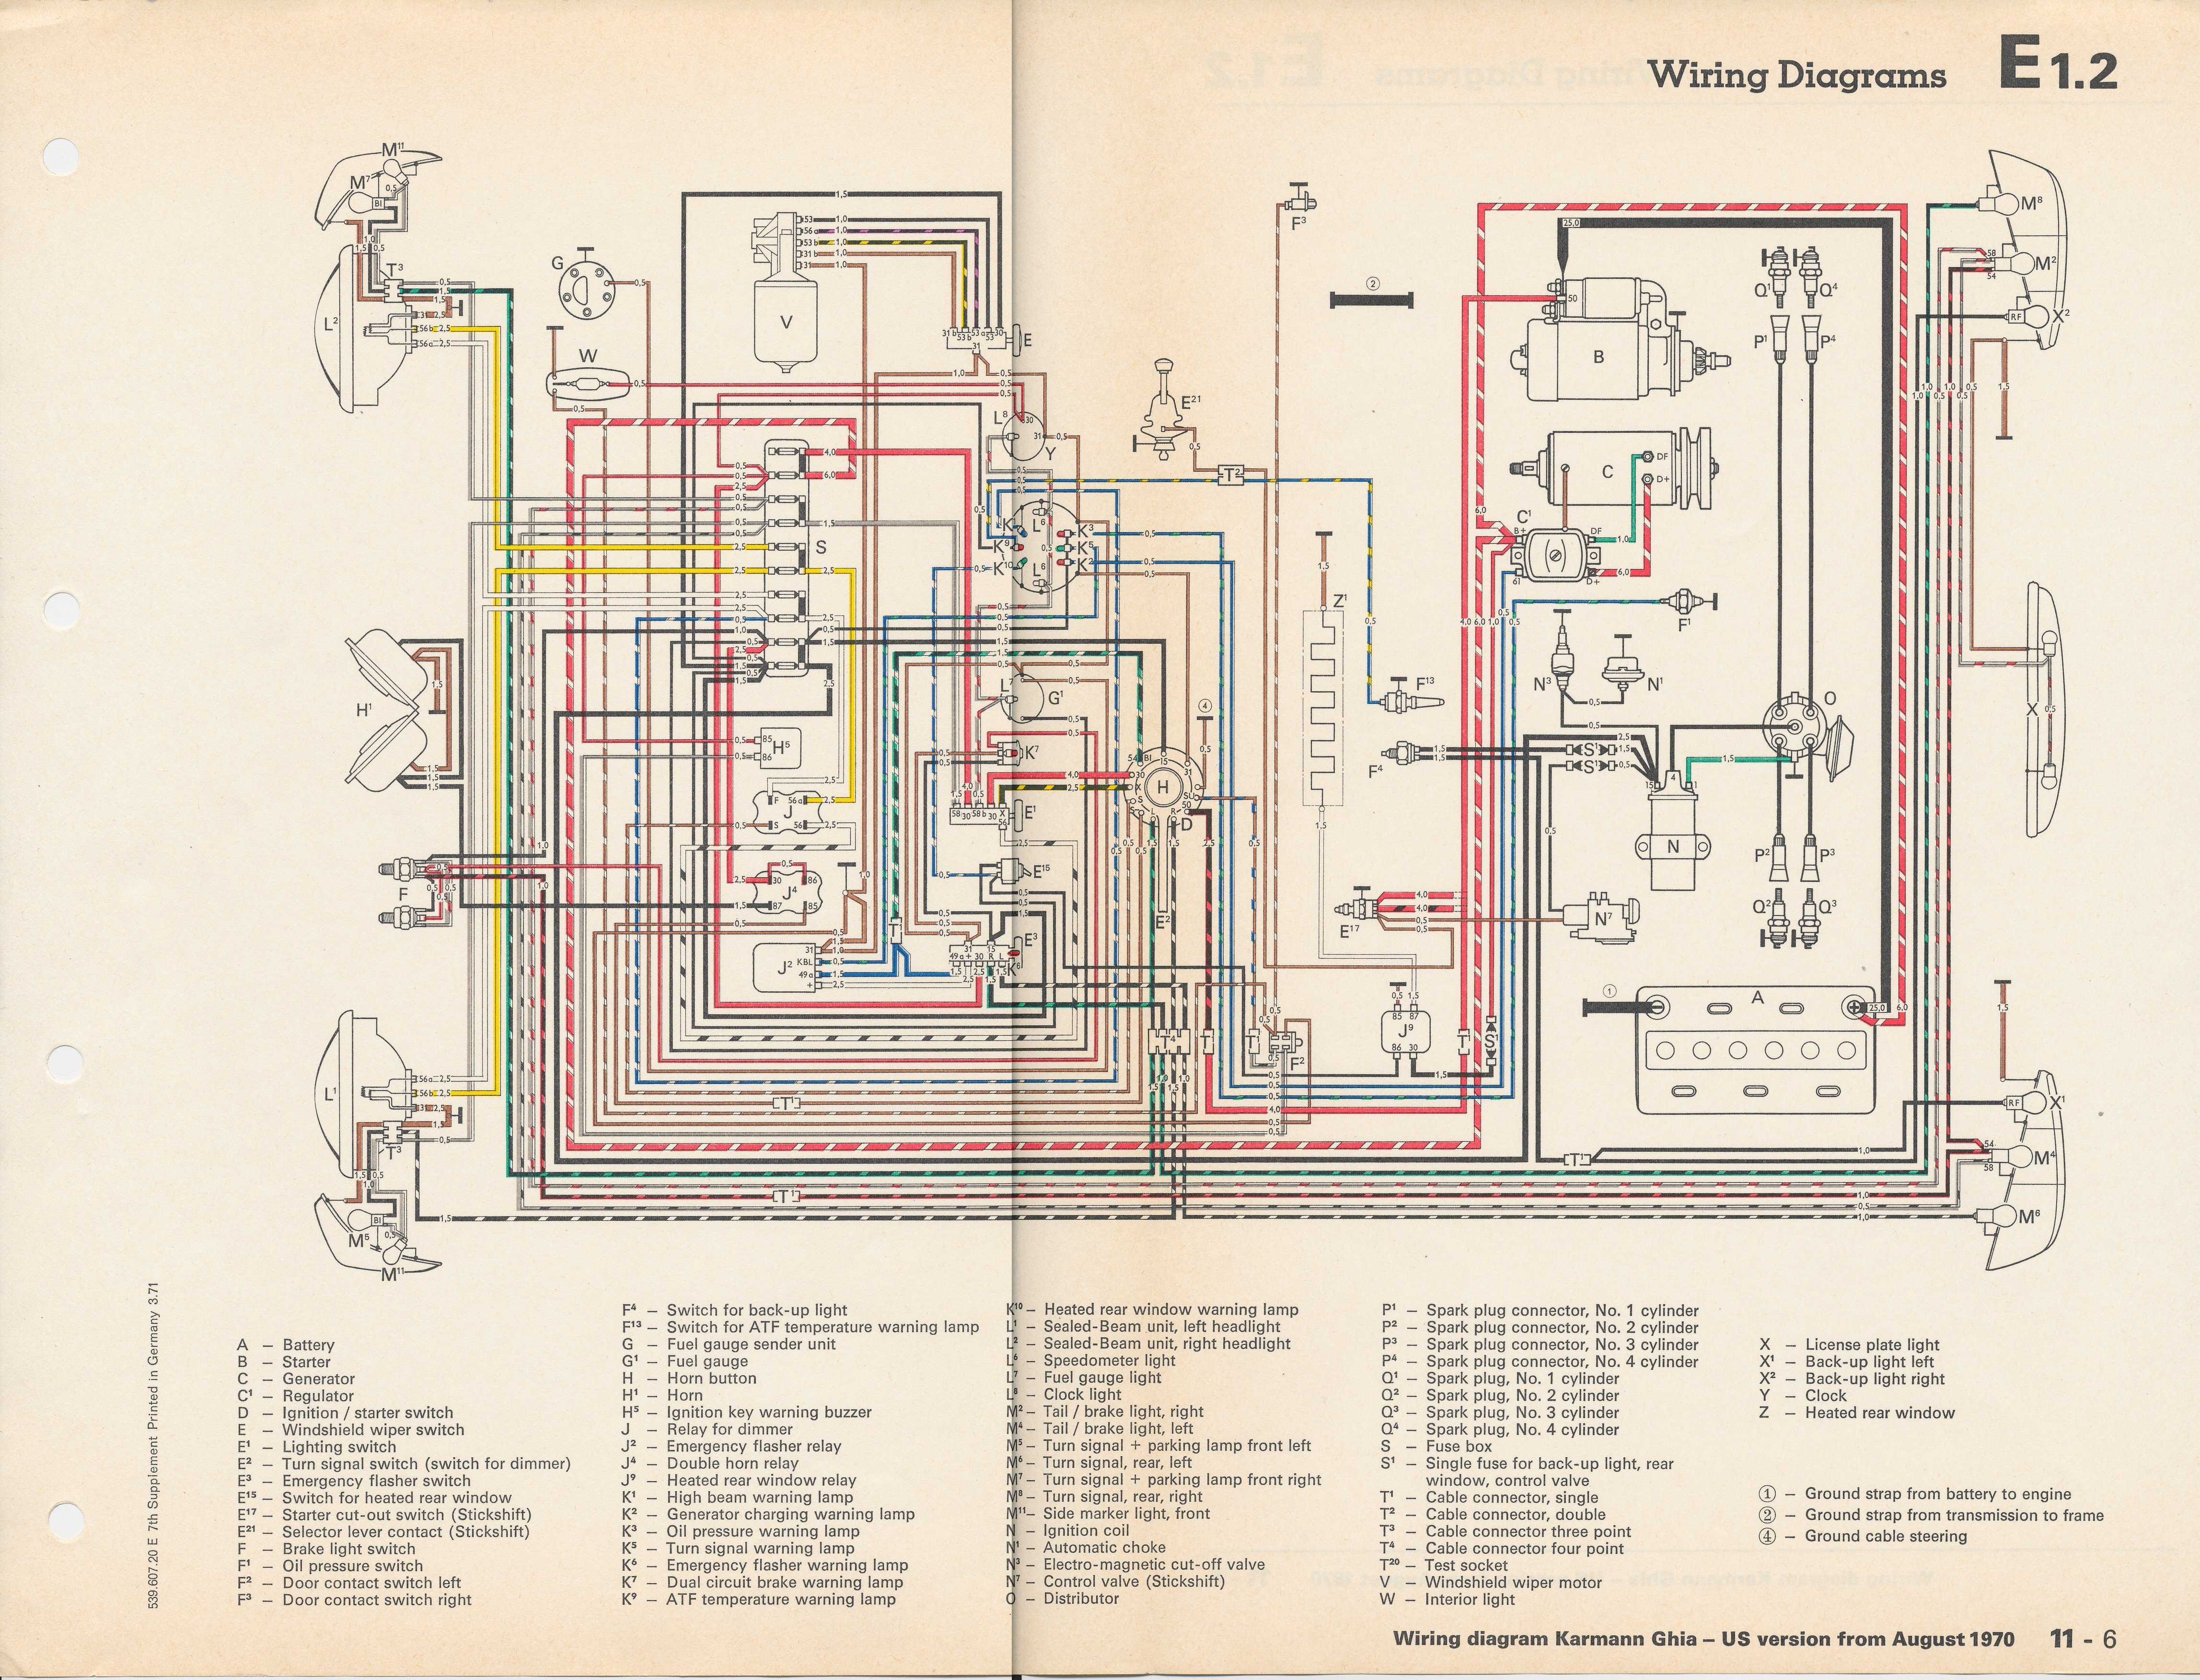 1971 vw beetle ignition switch wiring diagram bridge 2 subwoofers karmann ghia get free image about